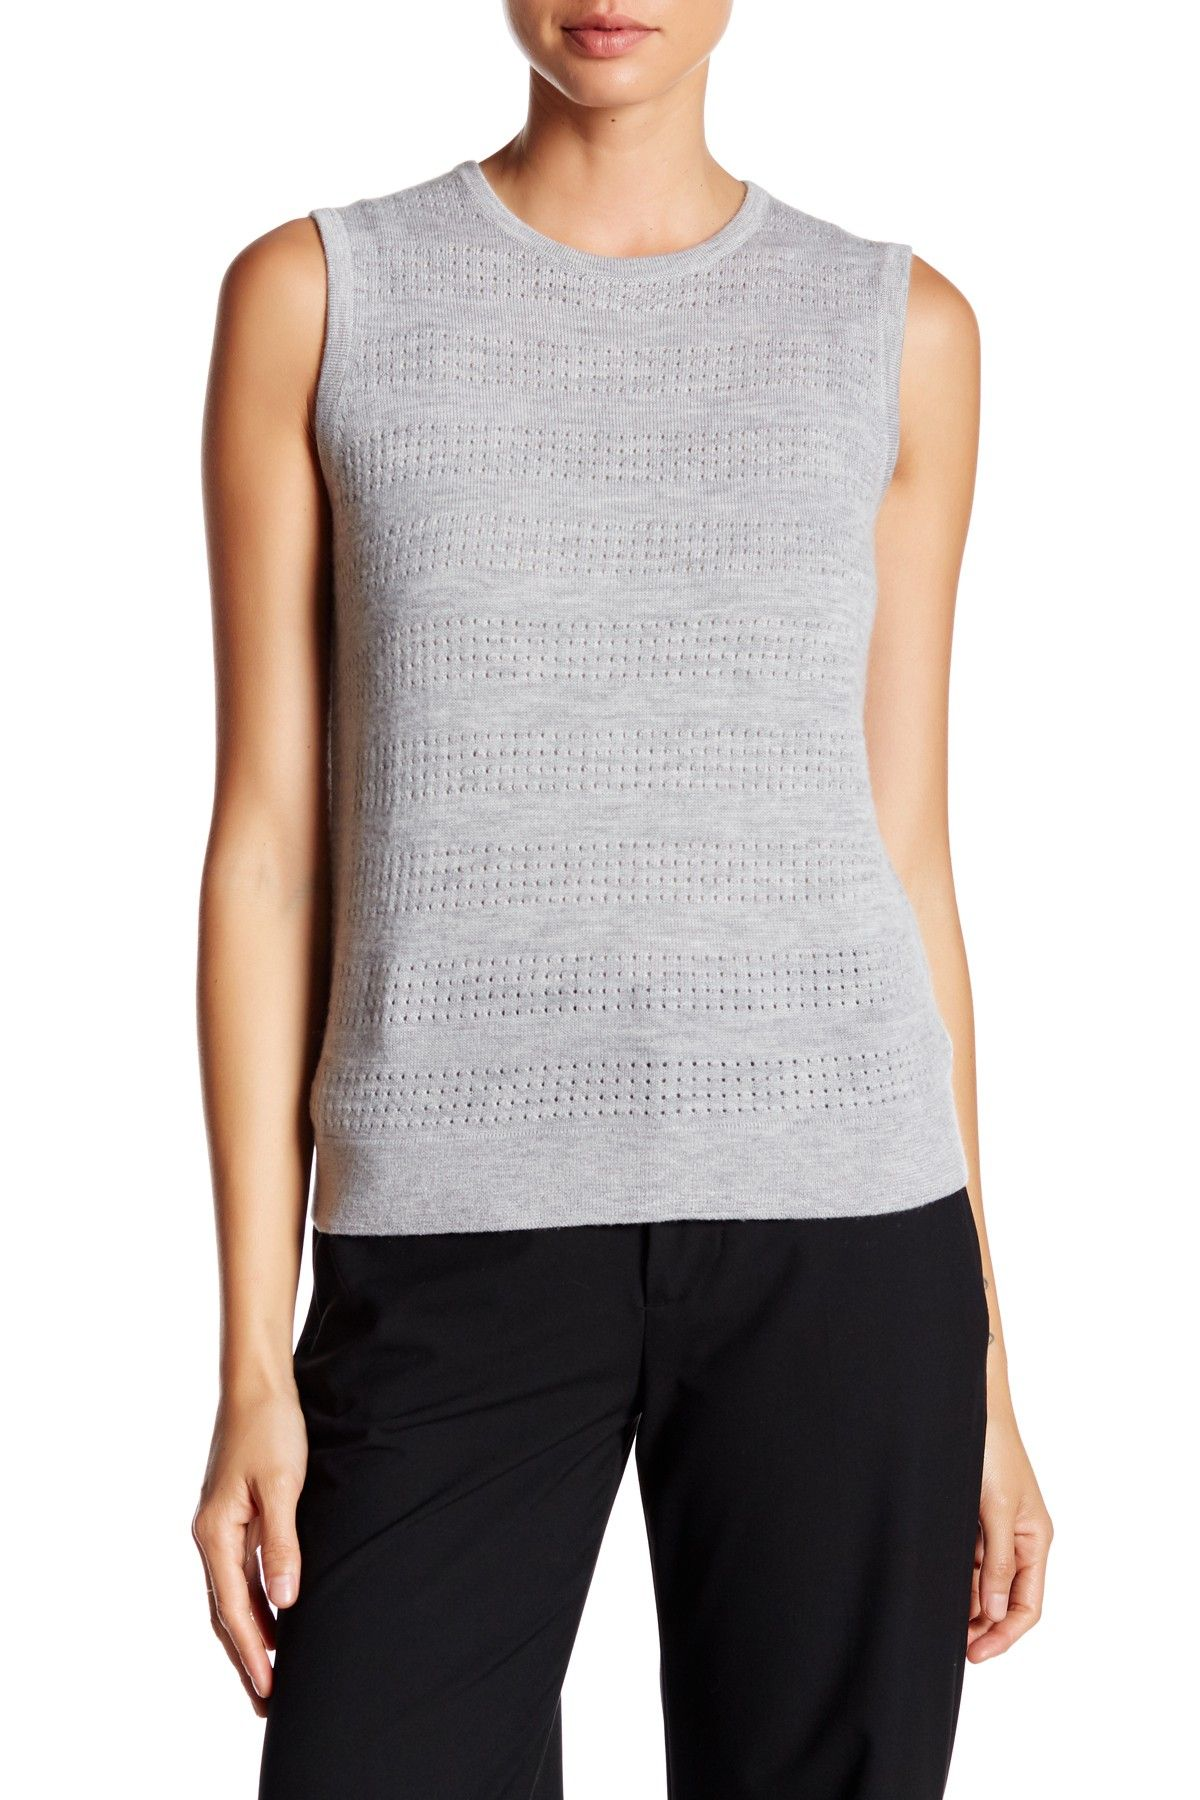 Yigal Azrouel Woven Combo Cashmere Sweater